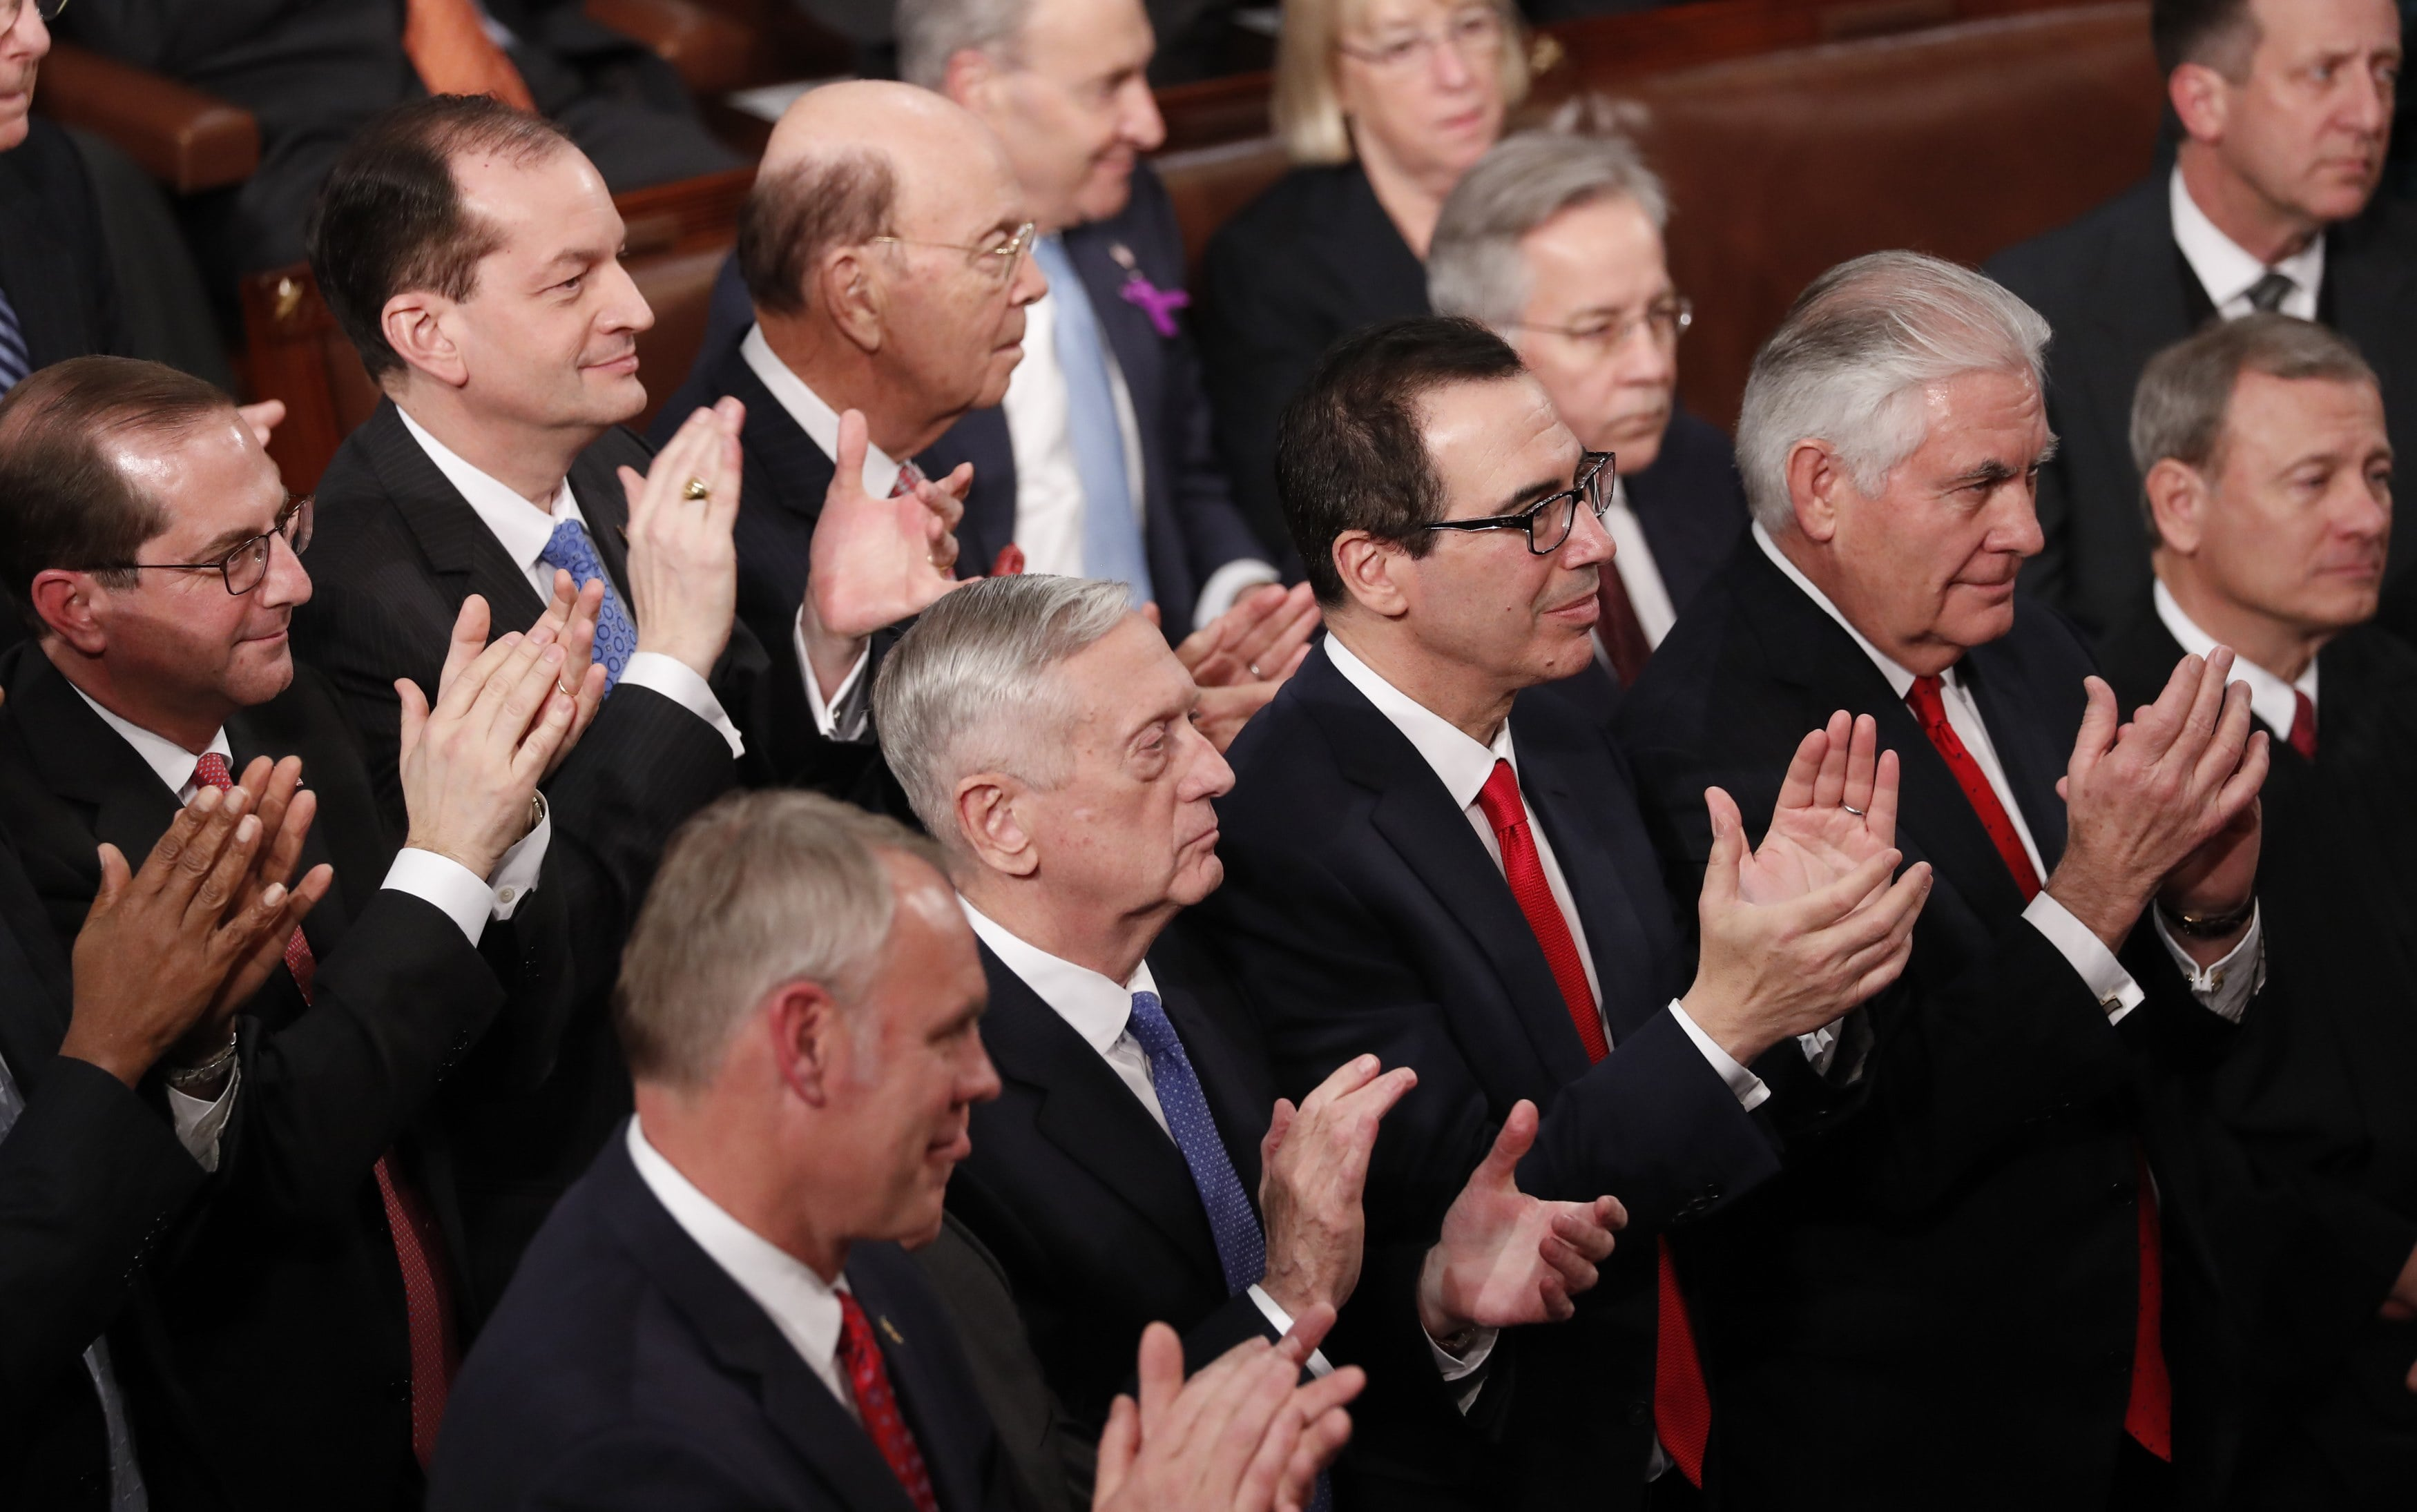 Cabinet members applaud as U.S. President Trump delivers his State of the Union address in Washington